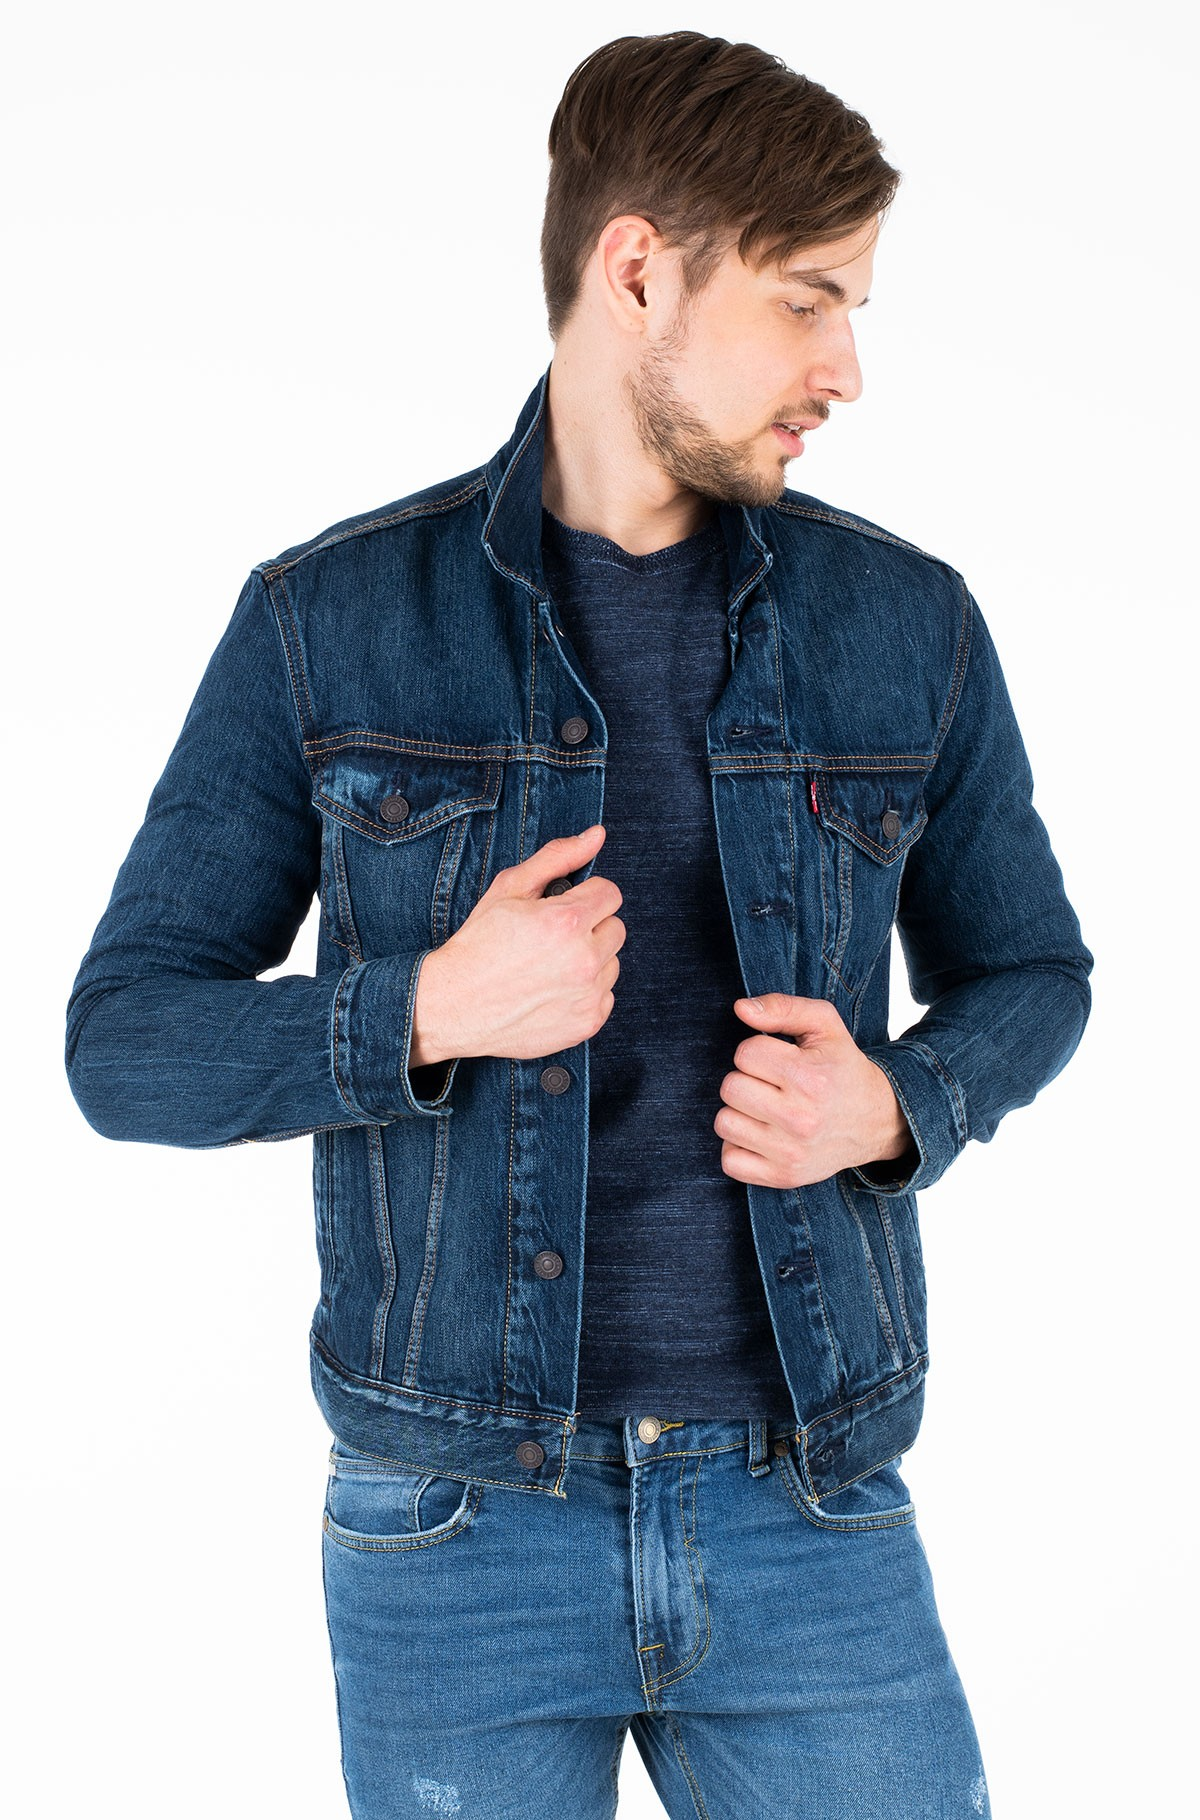 Denim jacket 723340352-full-1